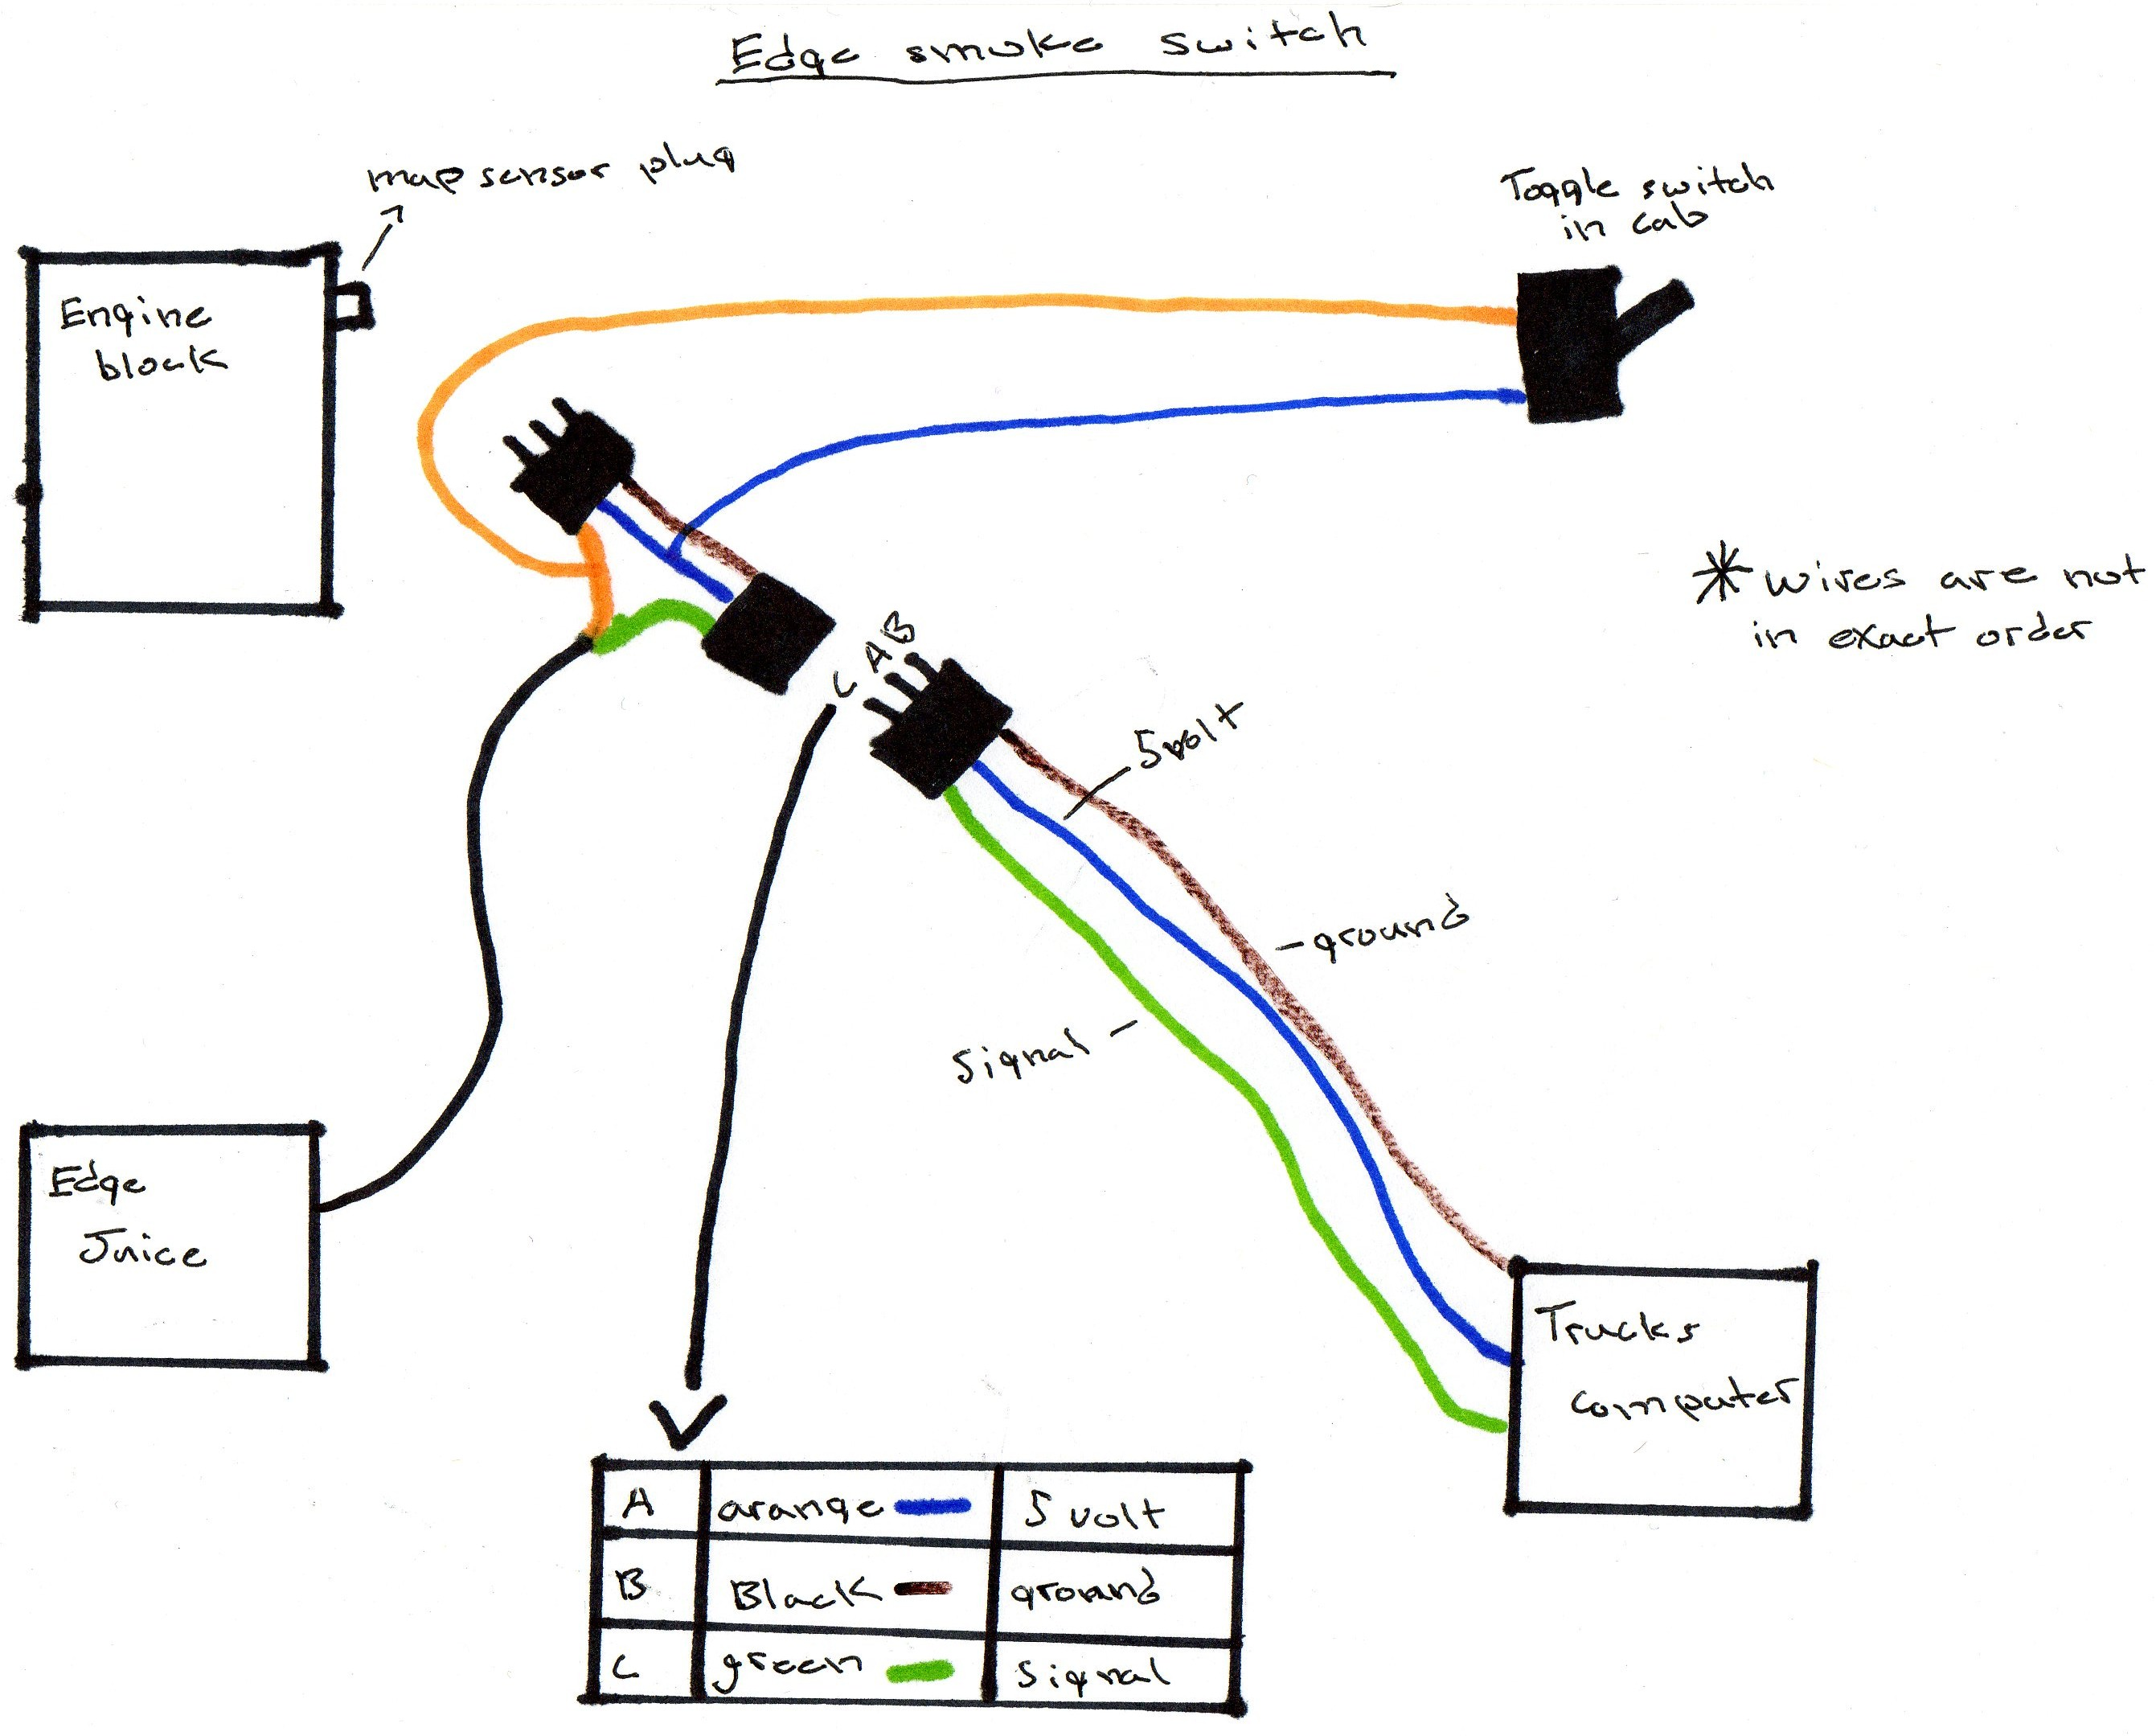 62552 Smoke Switch 4 on fan clutch wiring harness diagram